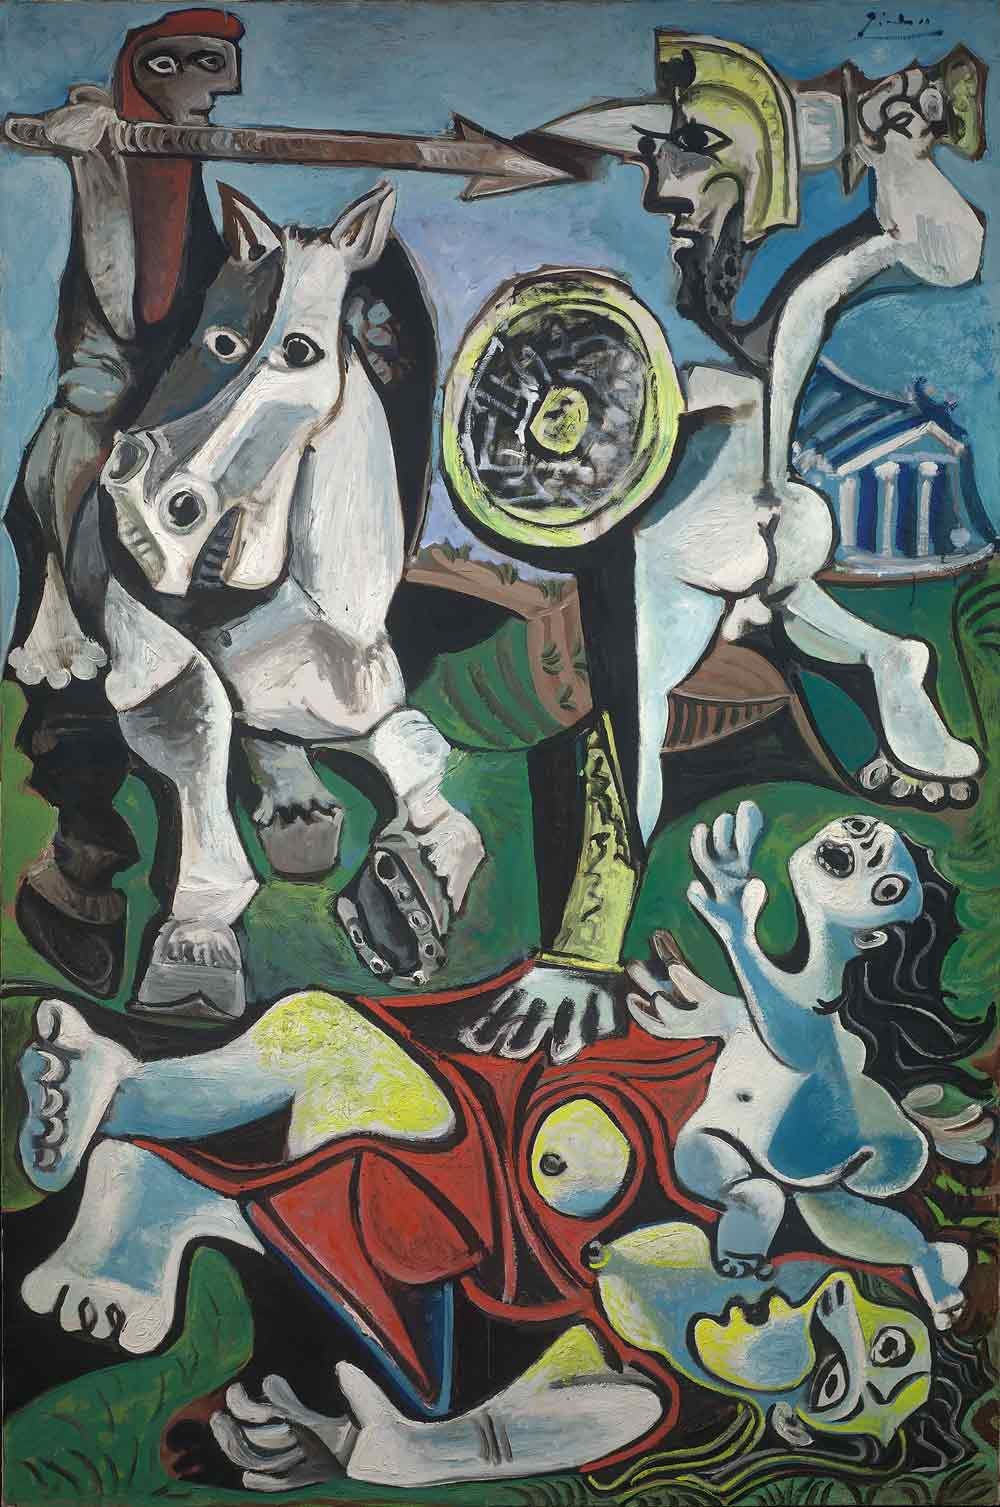 Pablo Picasso: Rape of the Sabine Women